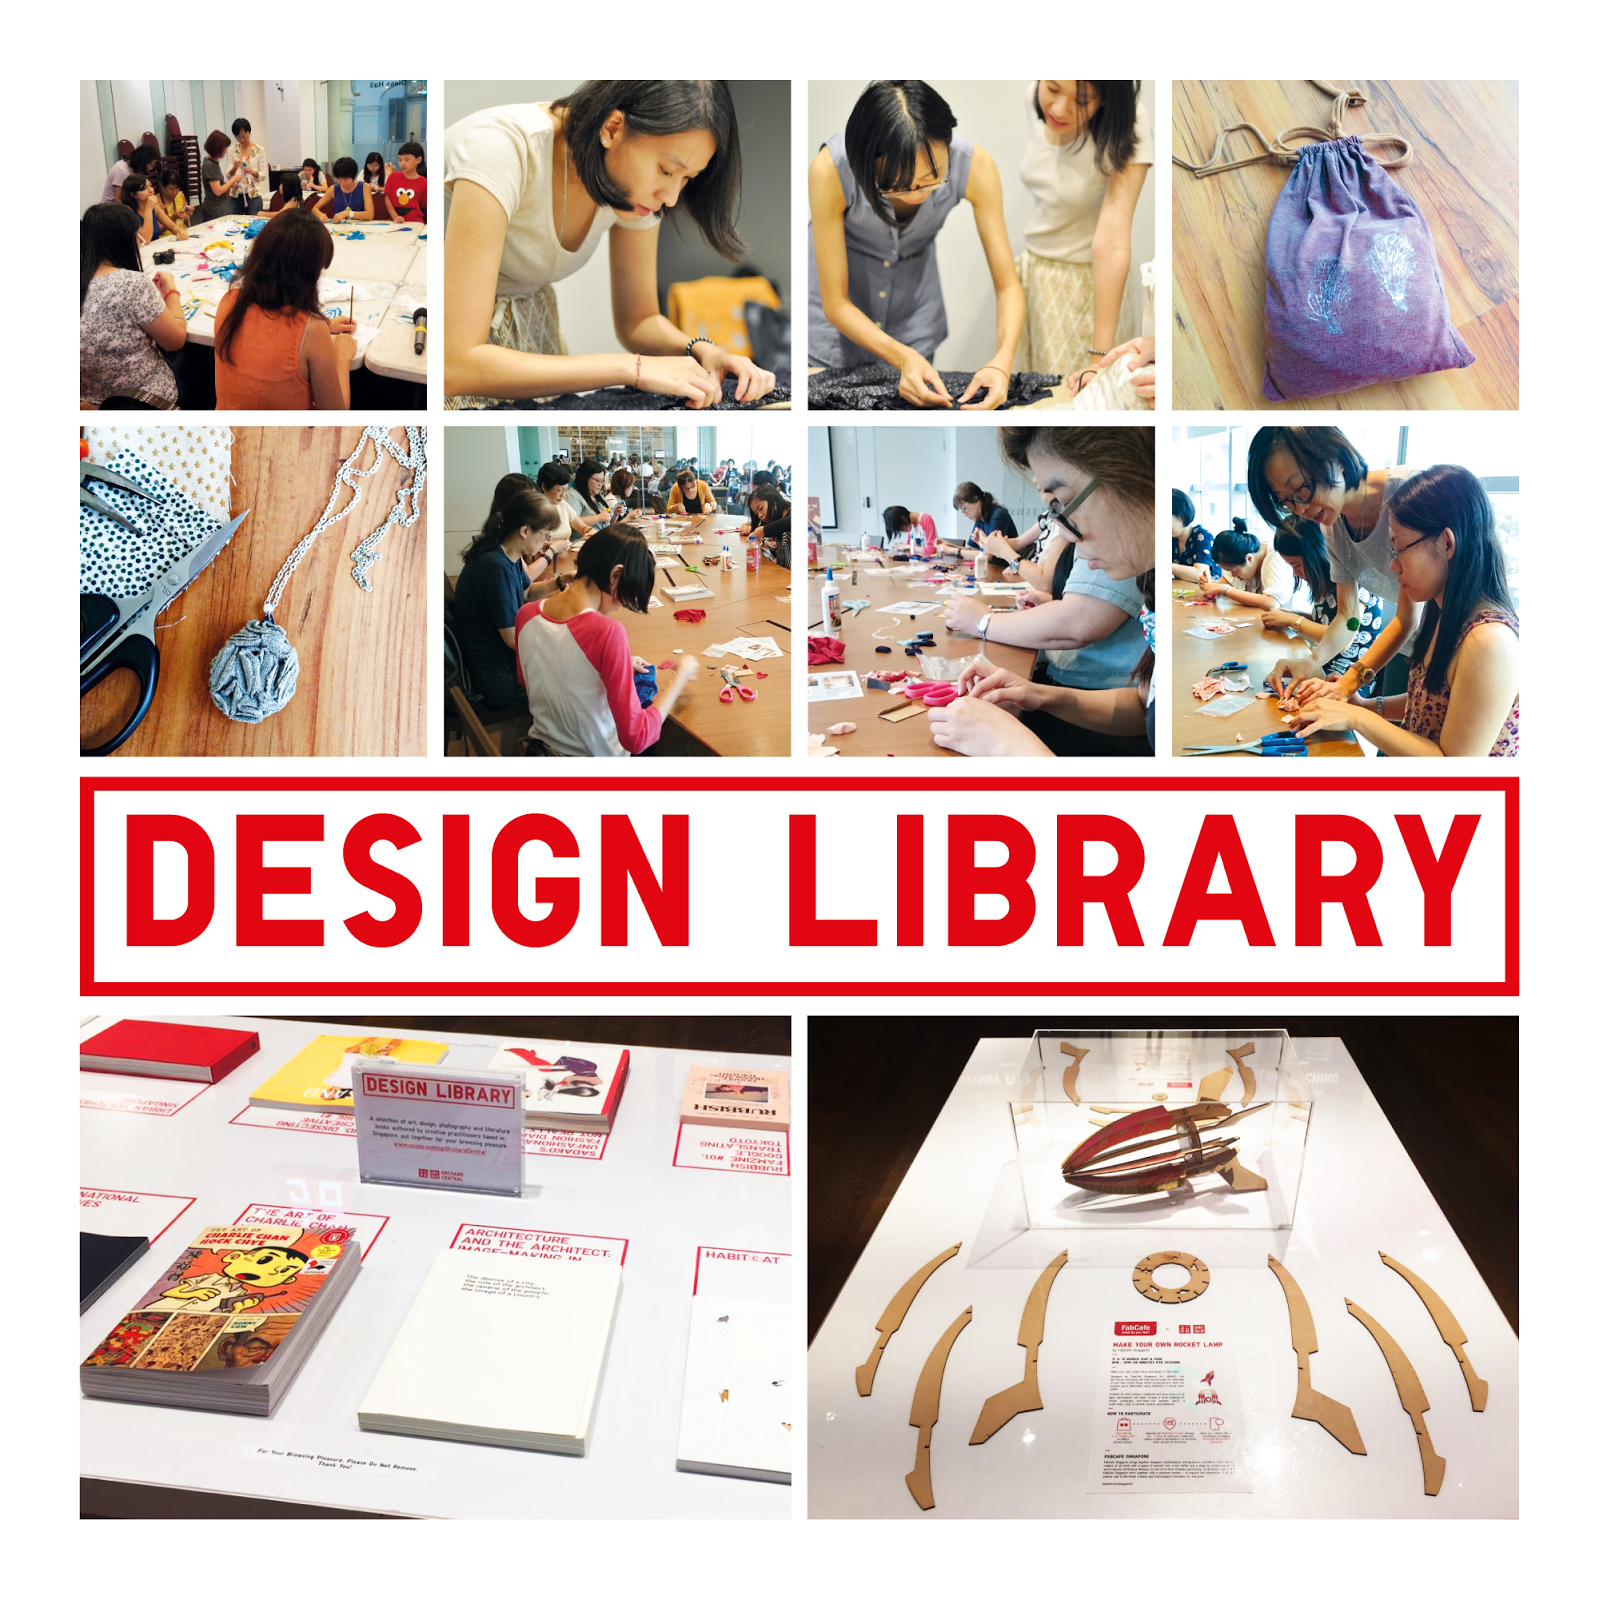 Uniqlo Design Library Workshops